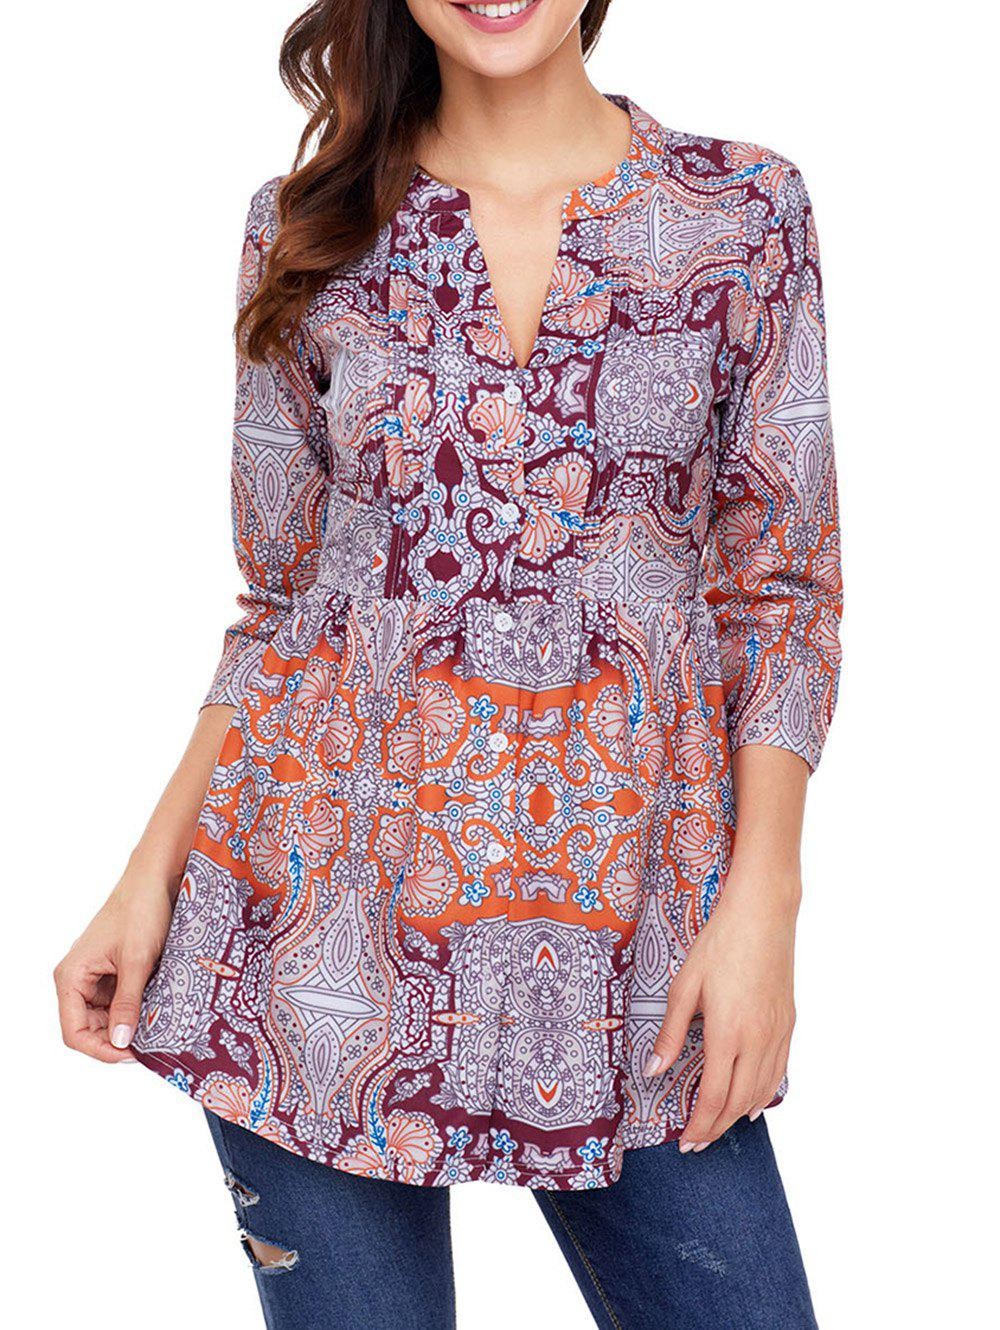 Blouse à Imprimé Ethnique à Col Fendu Orange S